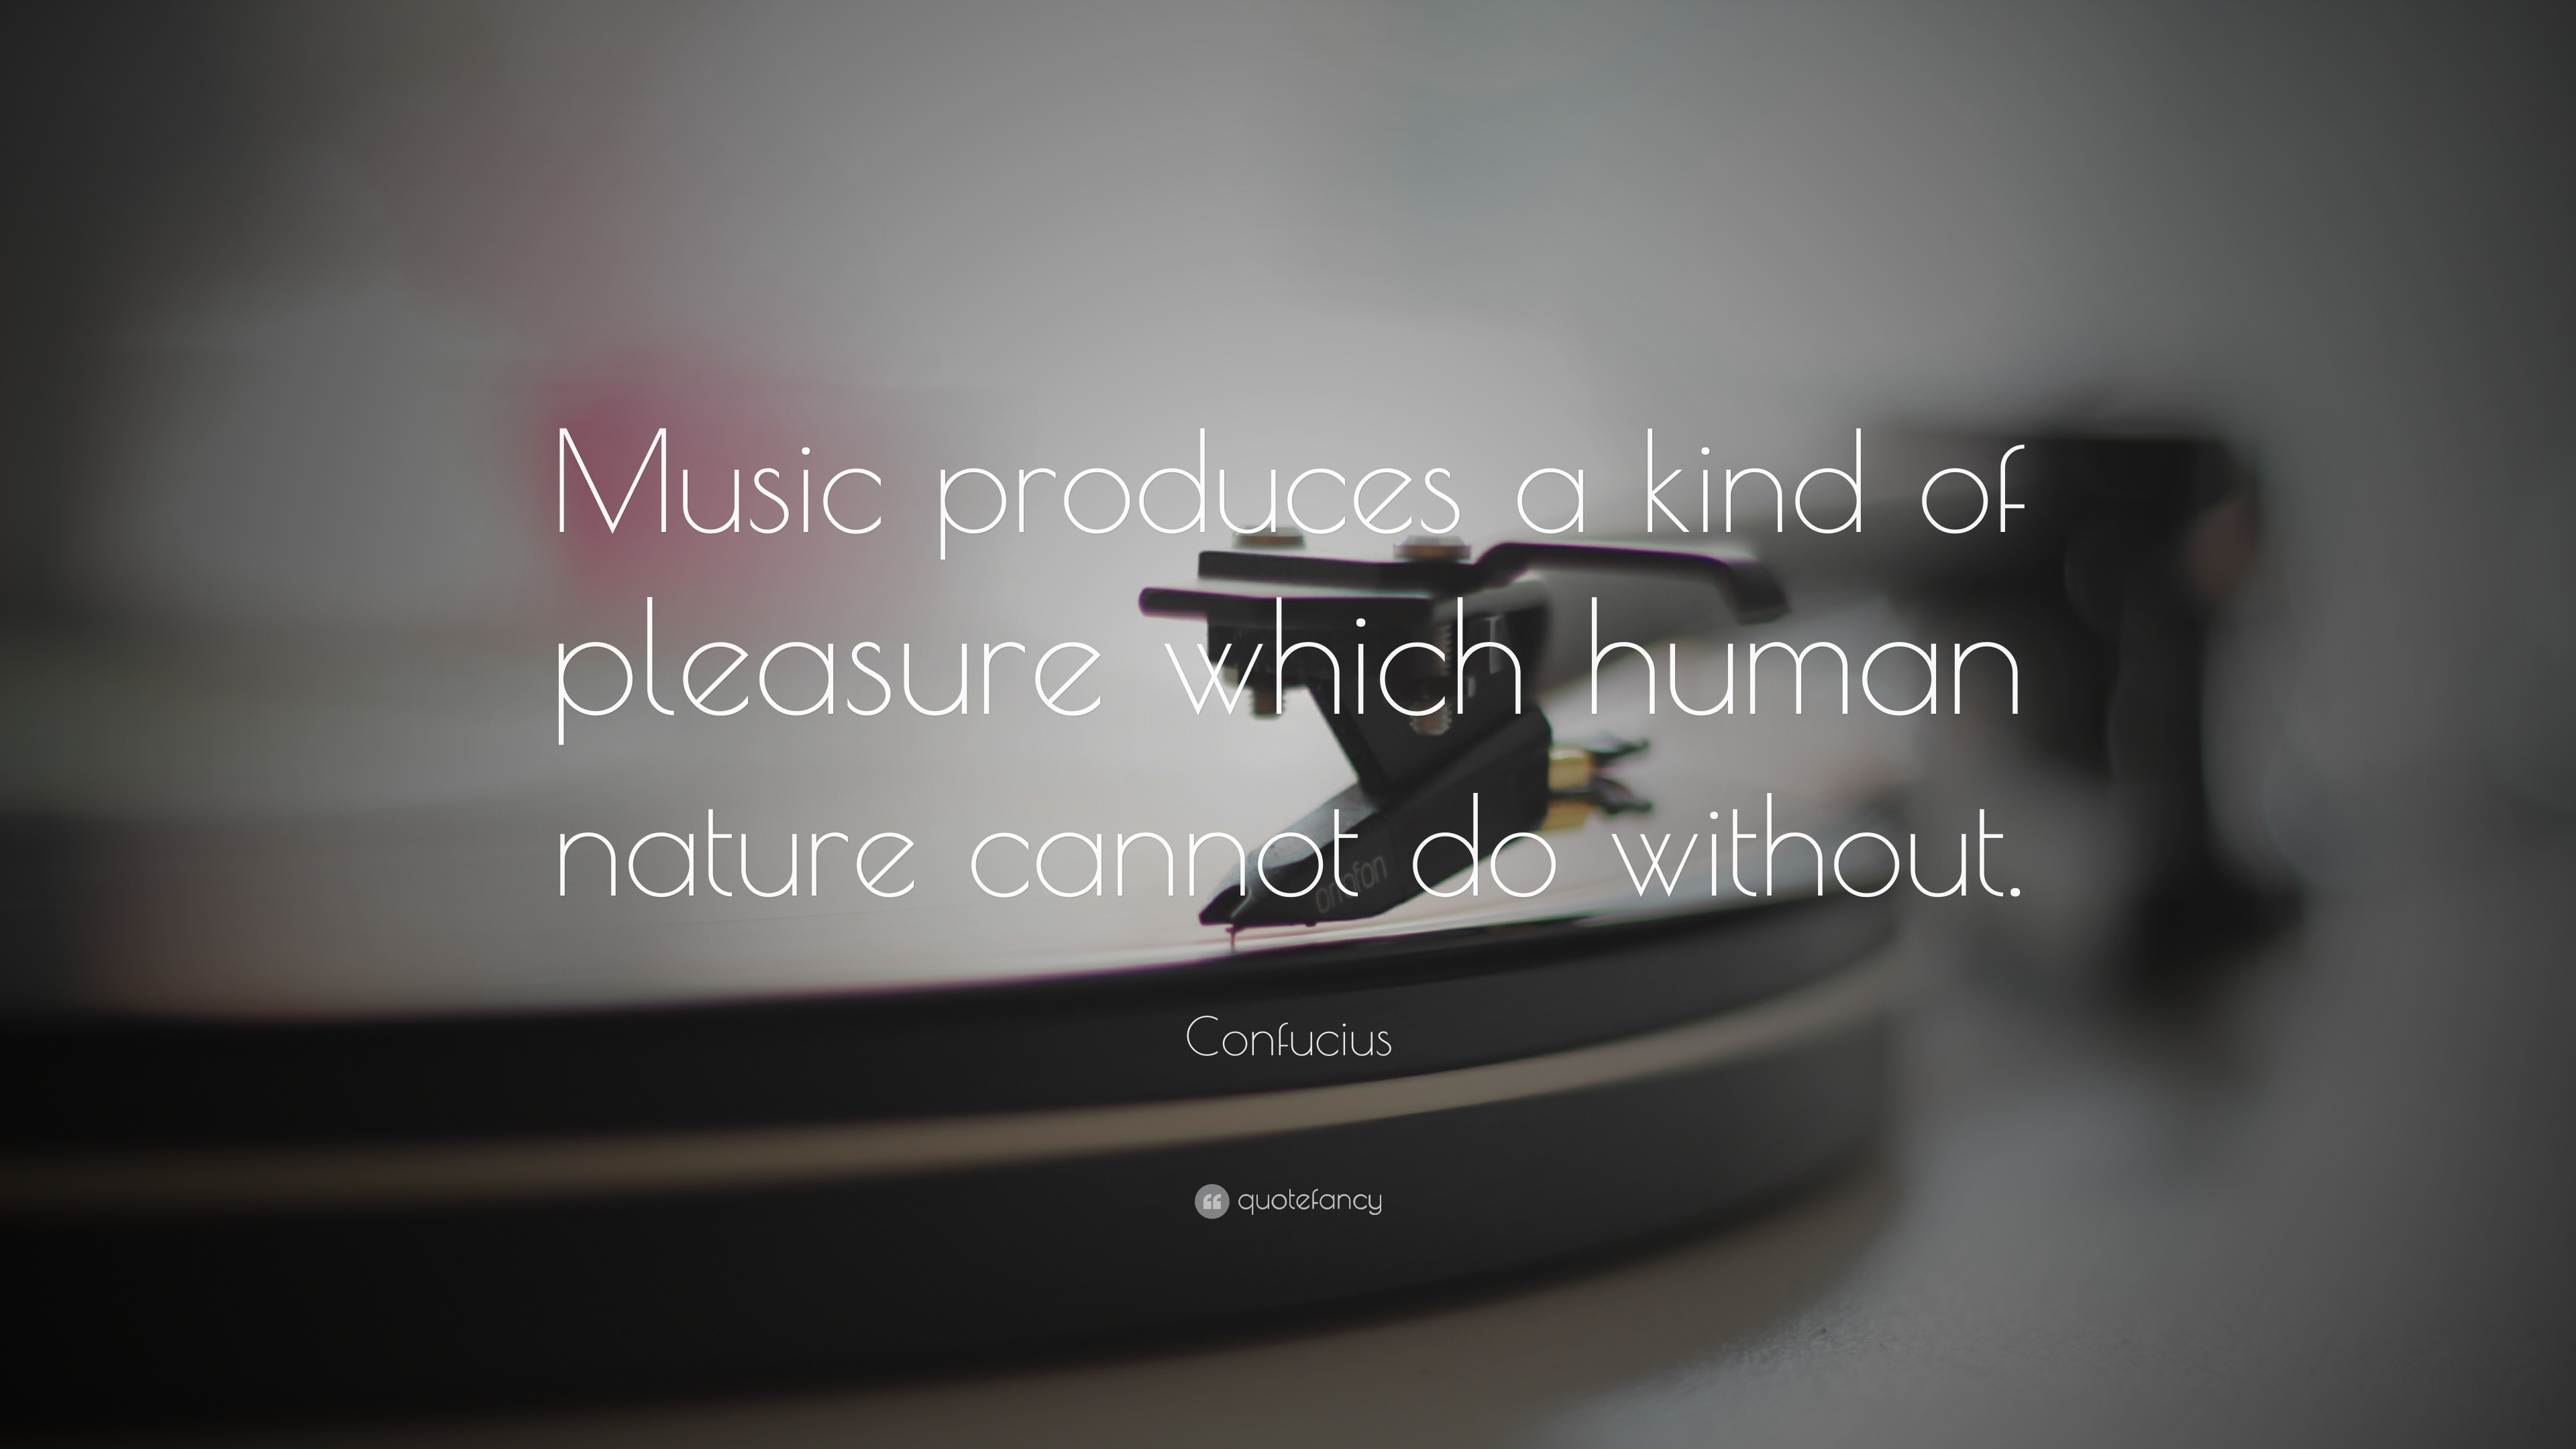 """Music provides a kind of pleasure which human nature cannot do without."" -- Confucius"